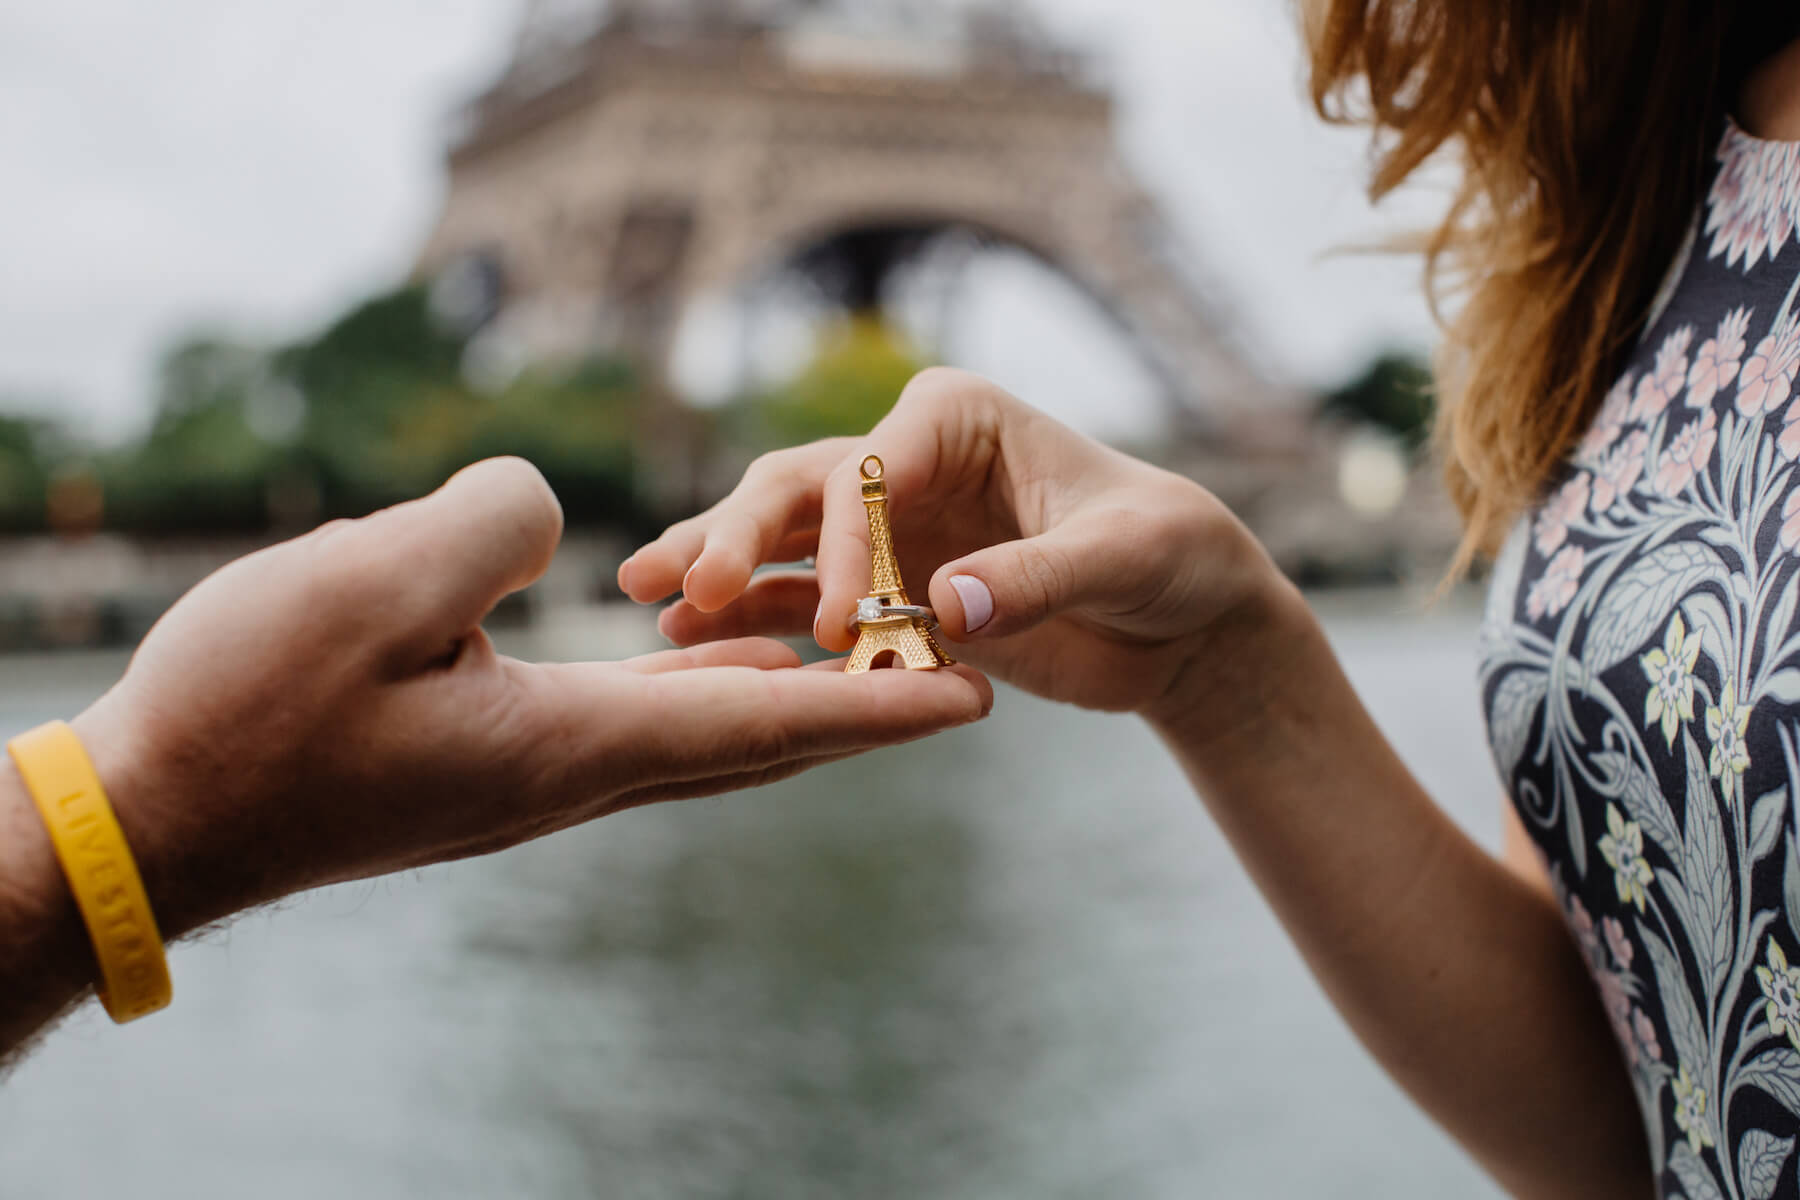 the man proposed to the woman, and had the ring presented to her on a small Eiffel Tower, in Paris, France